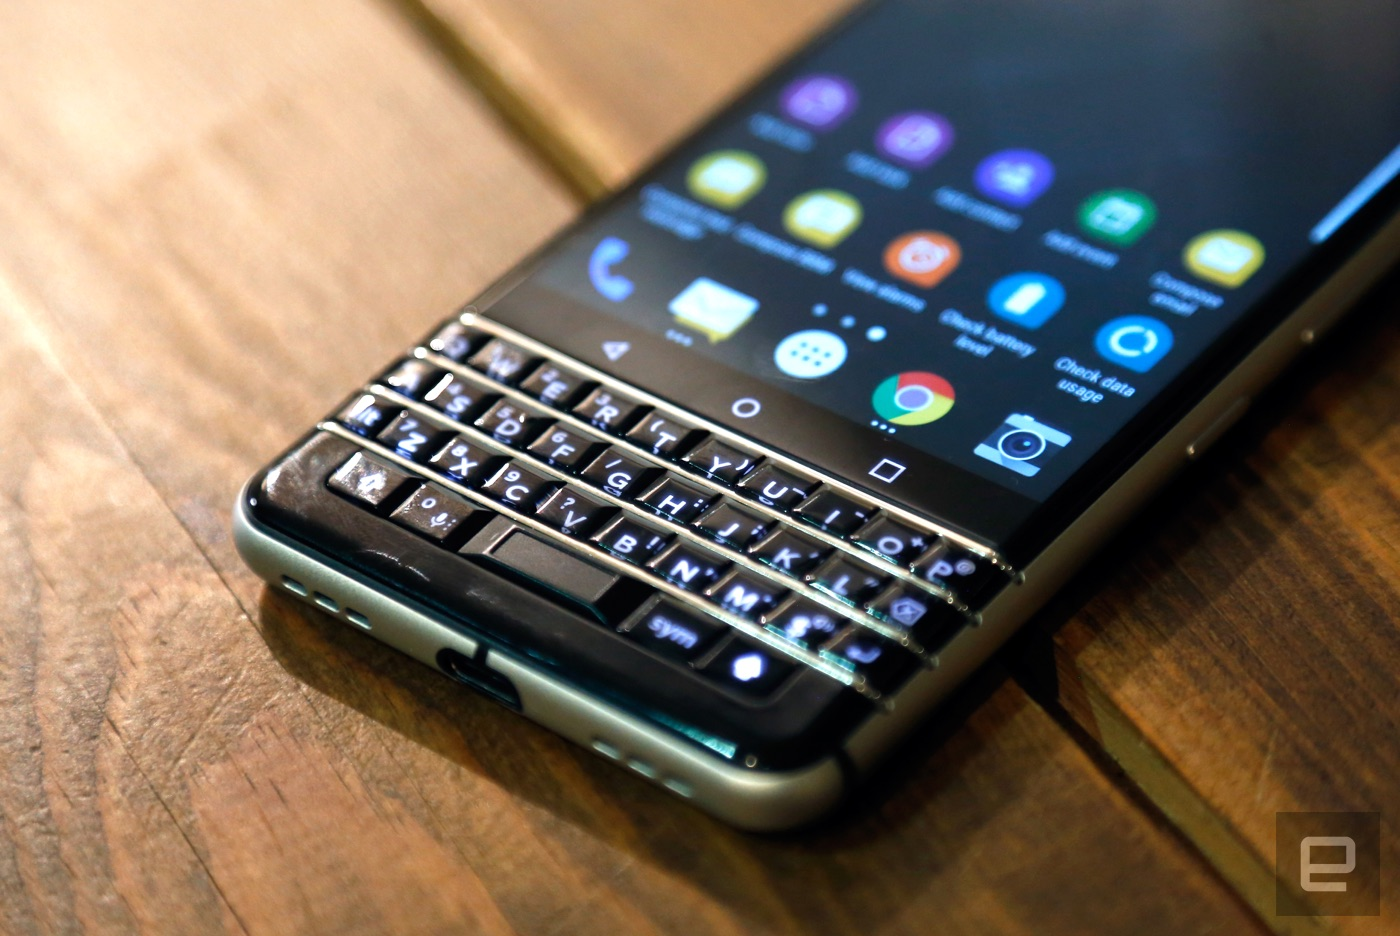 Blackberry keyone pictures official photos - Building A Strong Foundation Of Phones Is How Blackberry And Tcl Plan To Turn Things Around And At Least Some Of The Carriers That Didn T Love The Priv Are